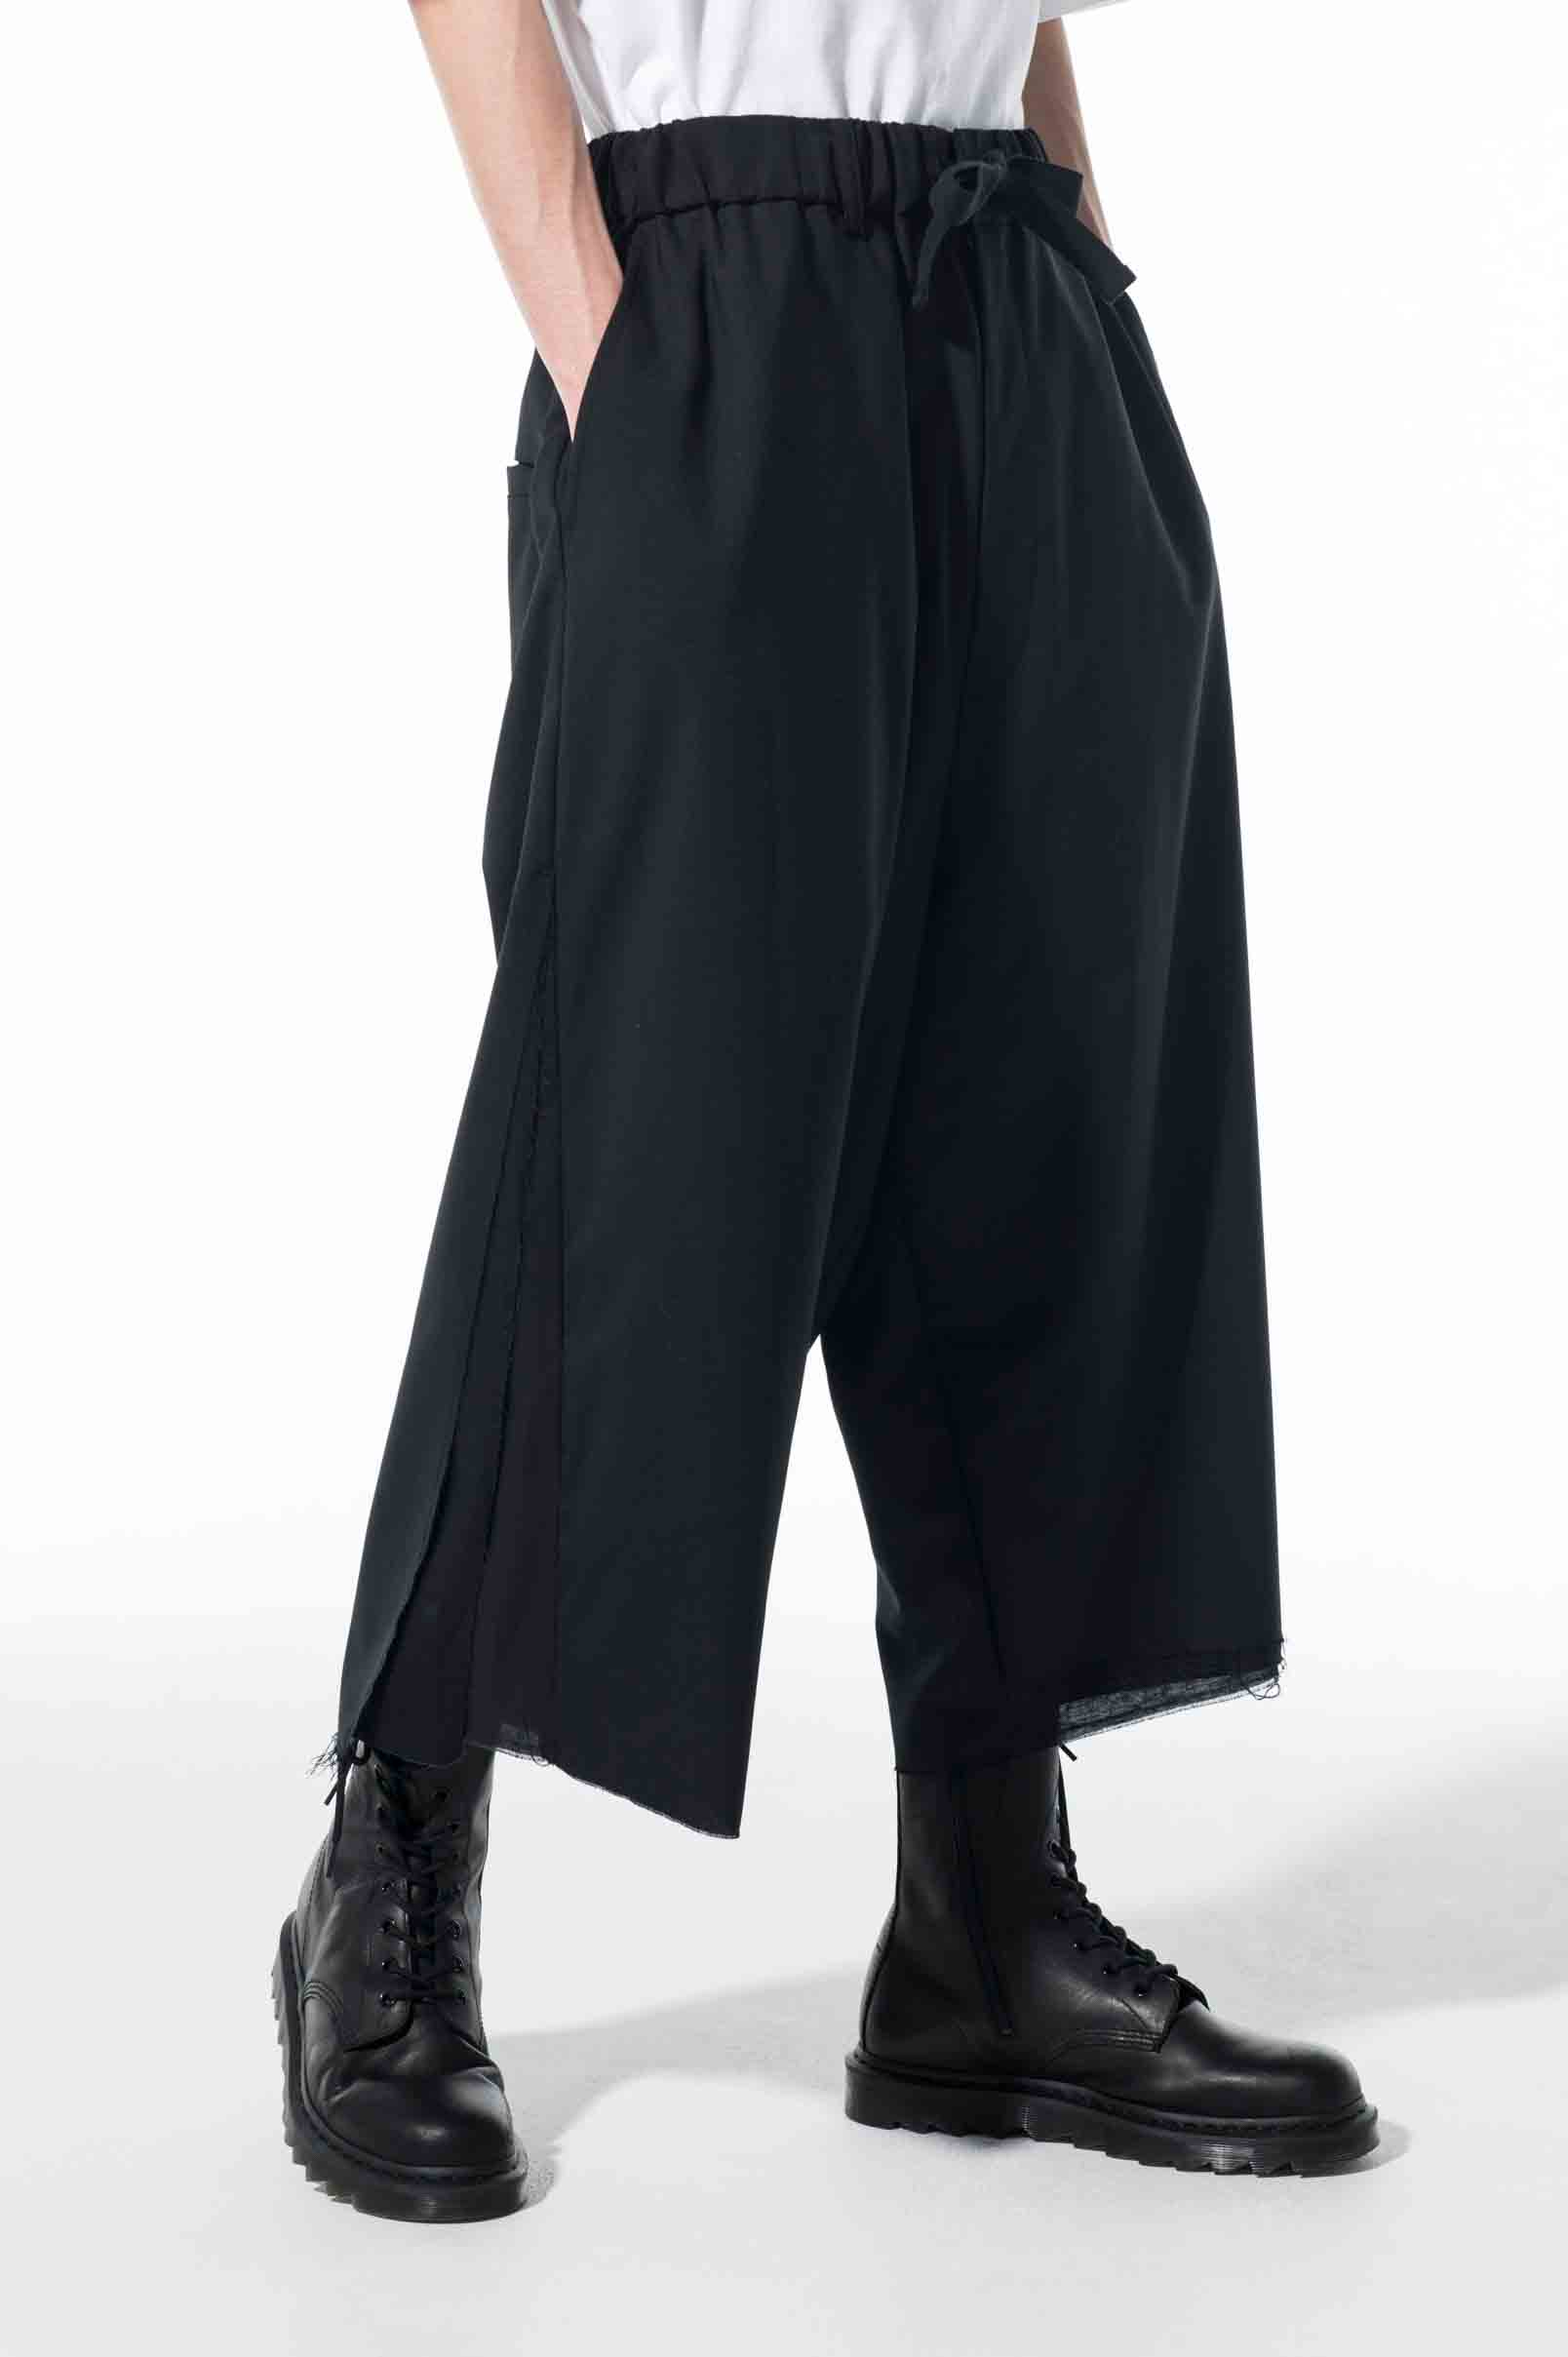 T/W Tropical Stretch 3 layers 6-quarter-length Pants